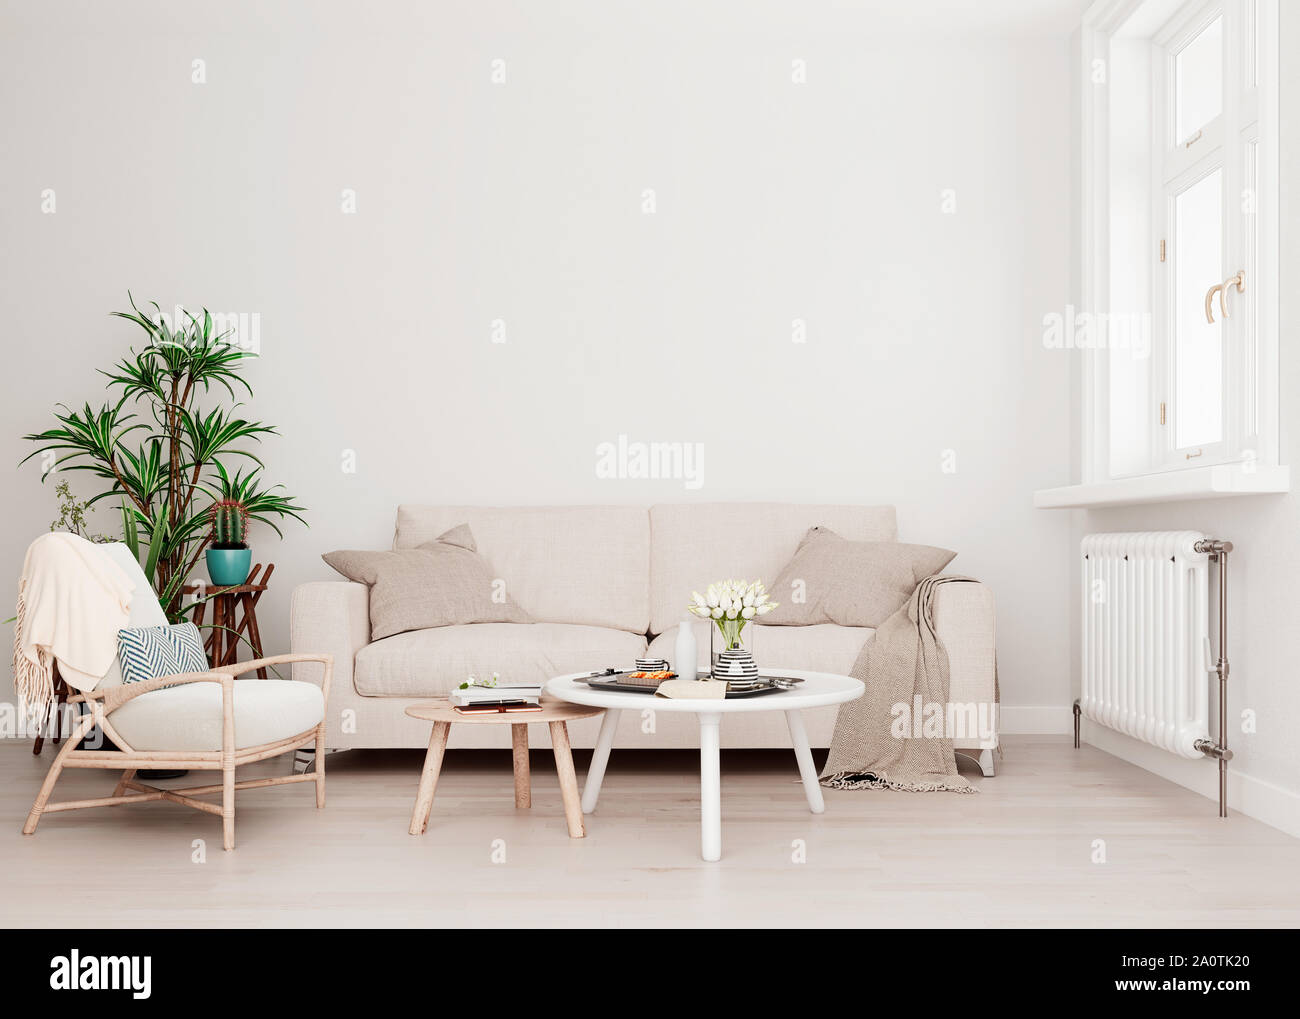 Mock Up Wall With Beige White Sofa Two Tables And A Chair In Modern Interior Background Living Room With Large Window An Radiator Scandinavian Styl Stock Photo Alamy